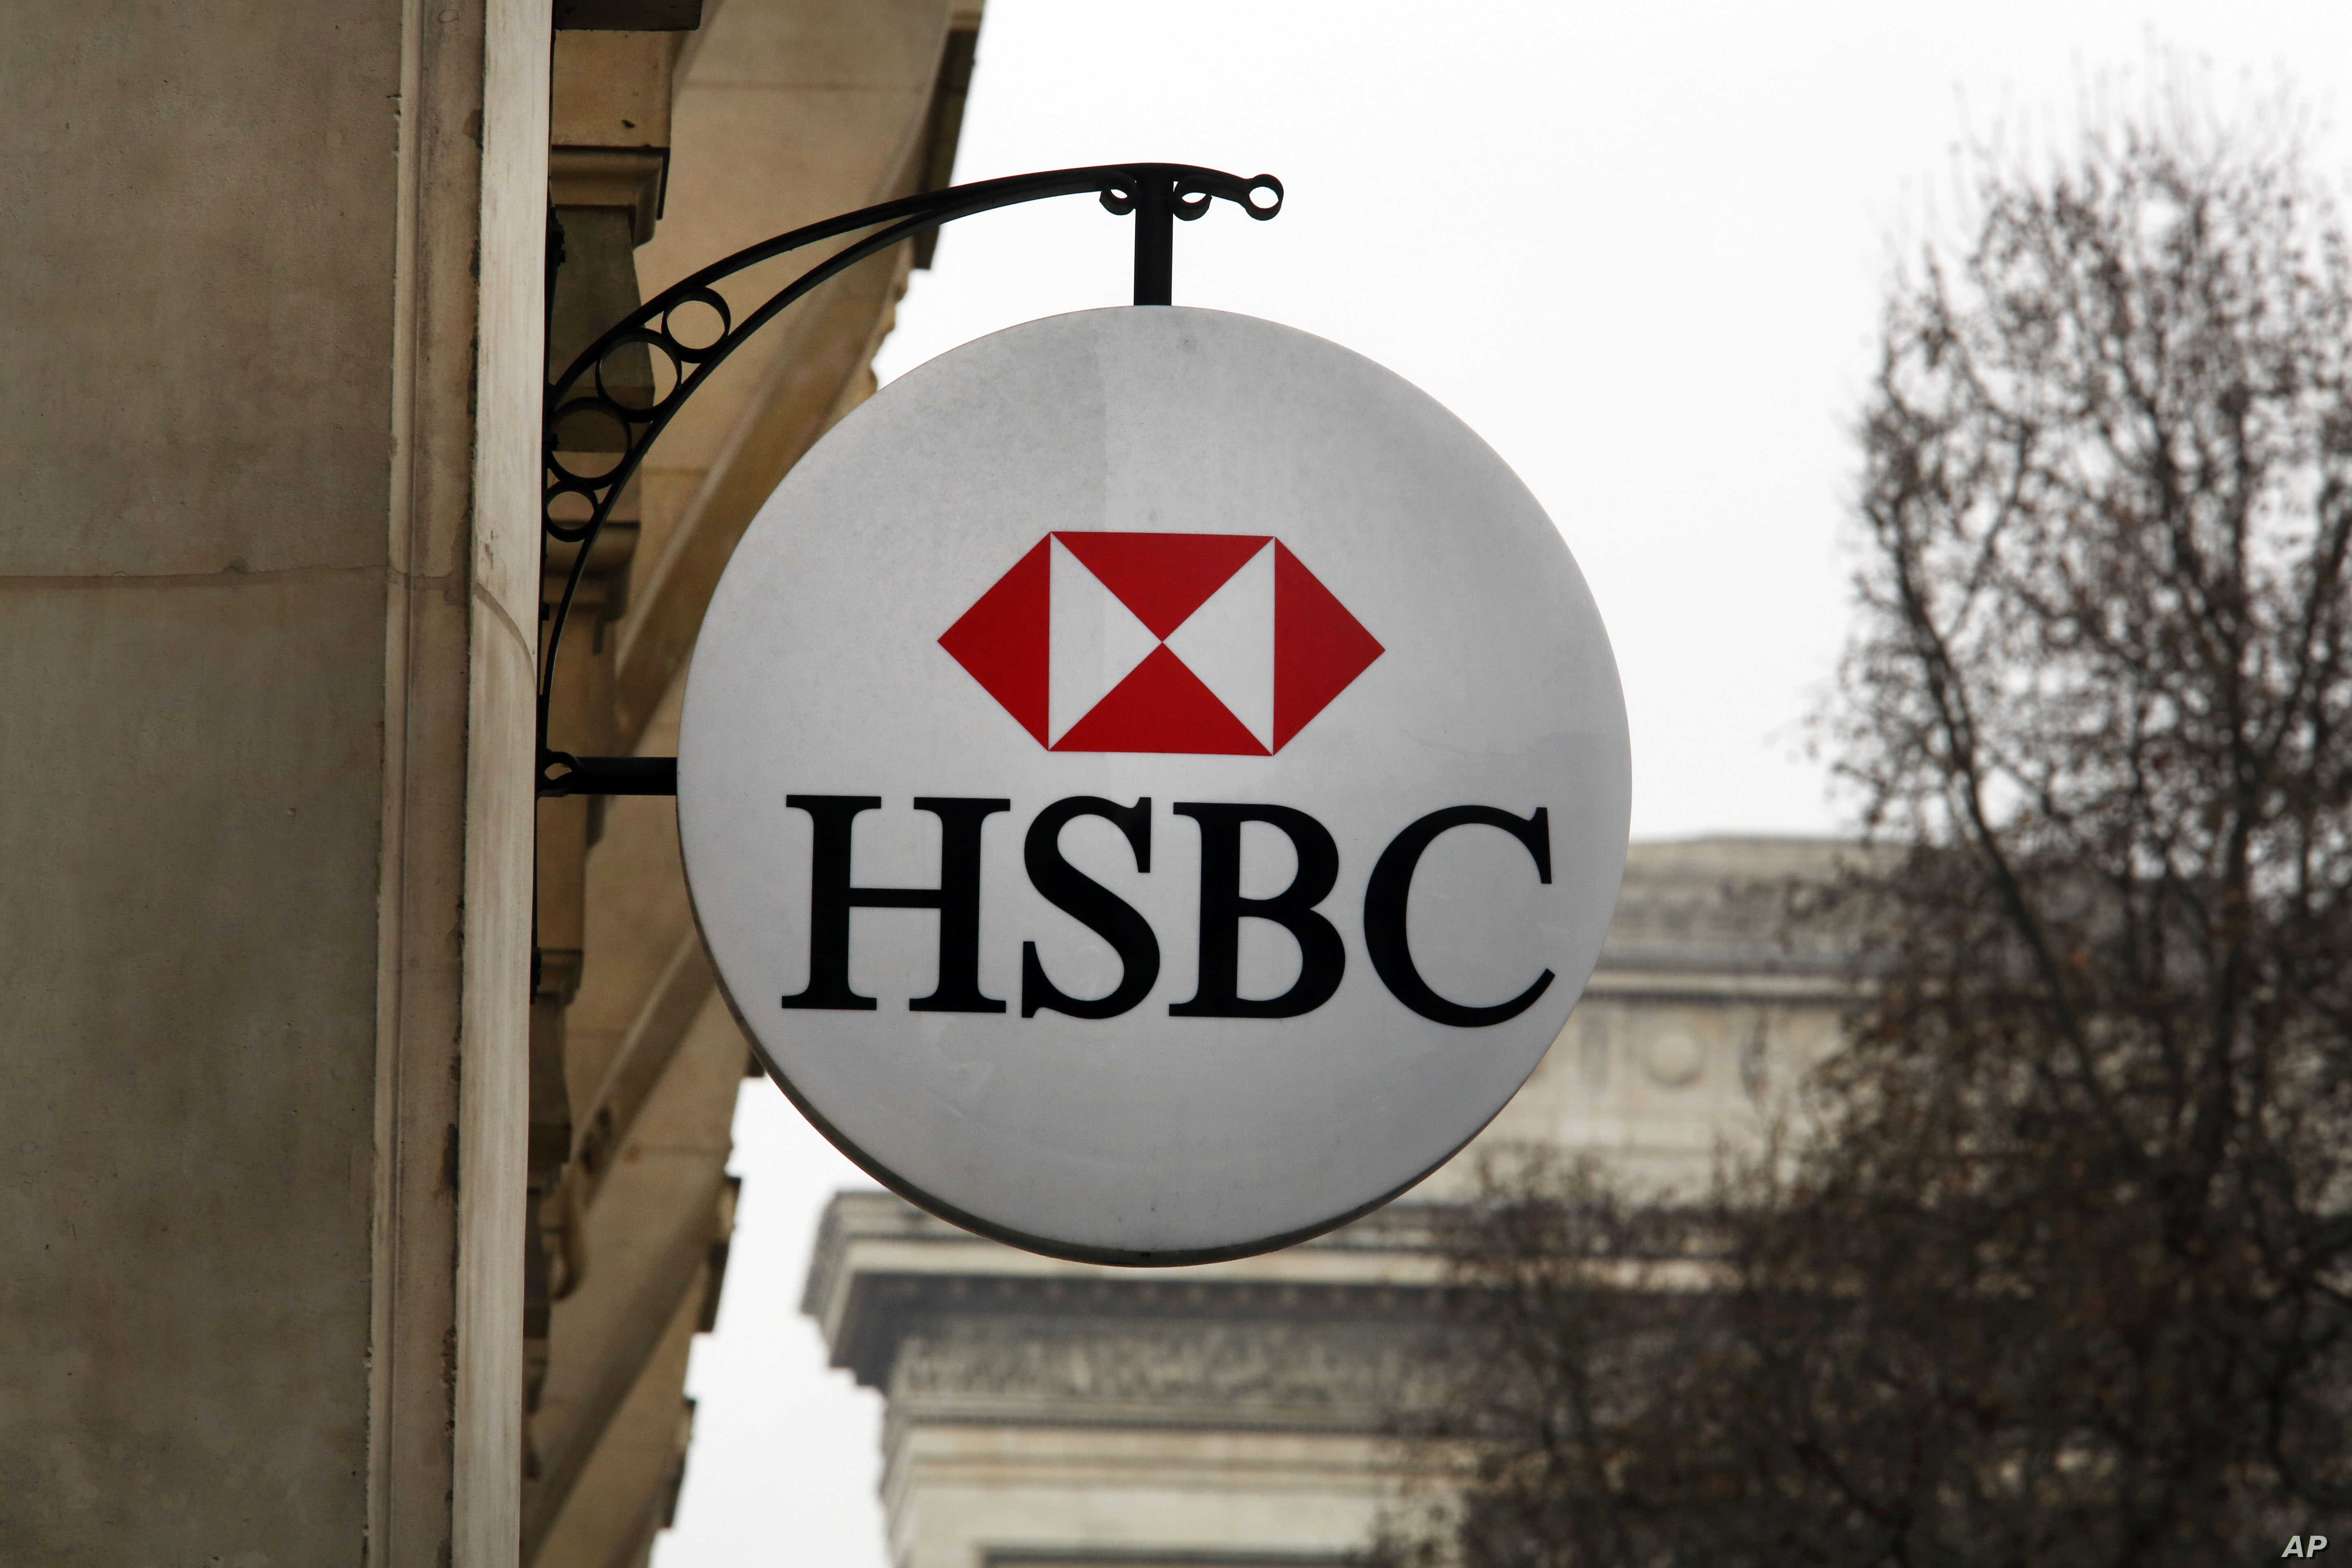 Bank of England May Look Into HSBC Tax Case | Voice of